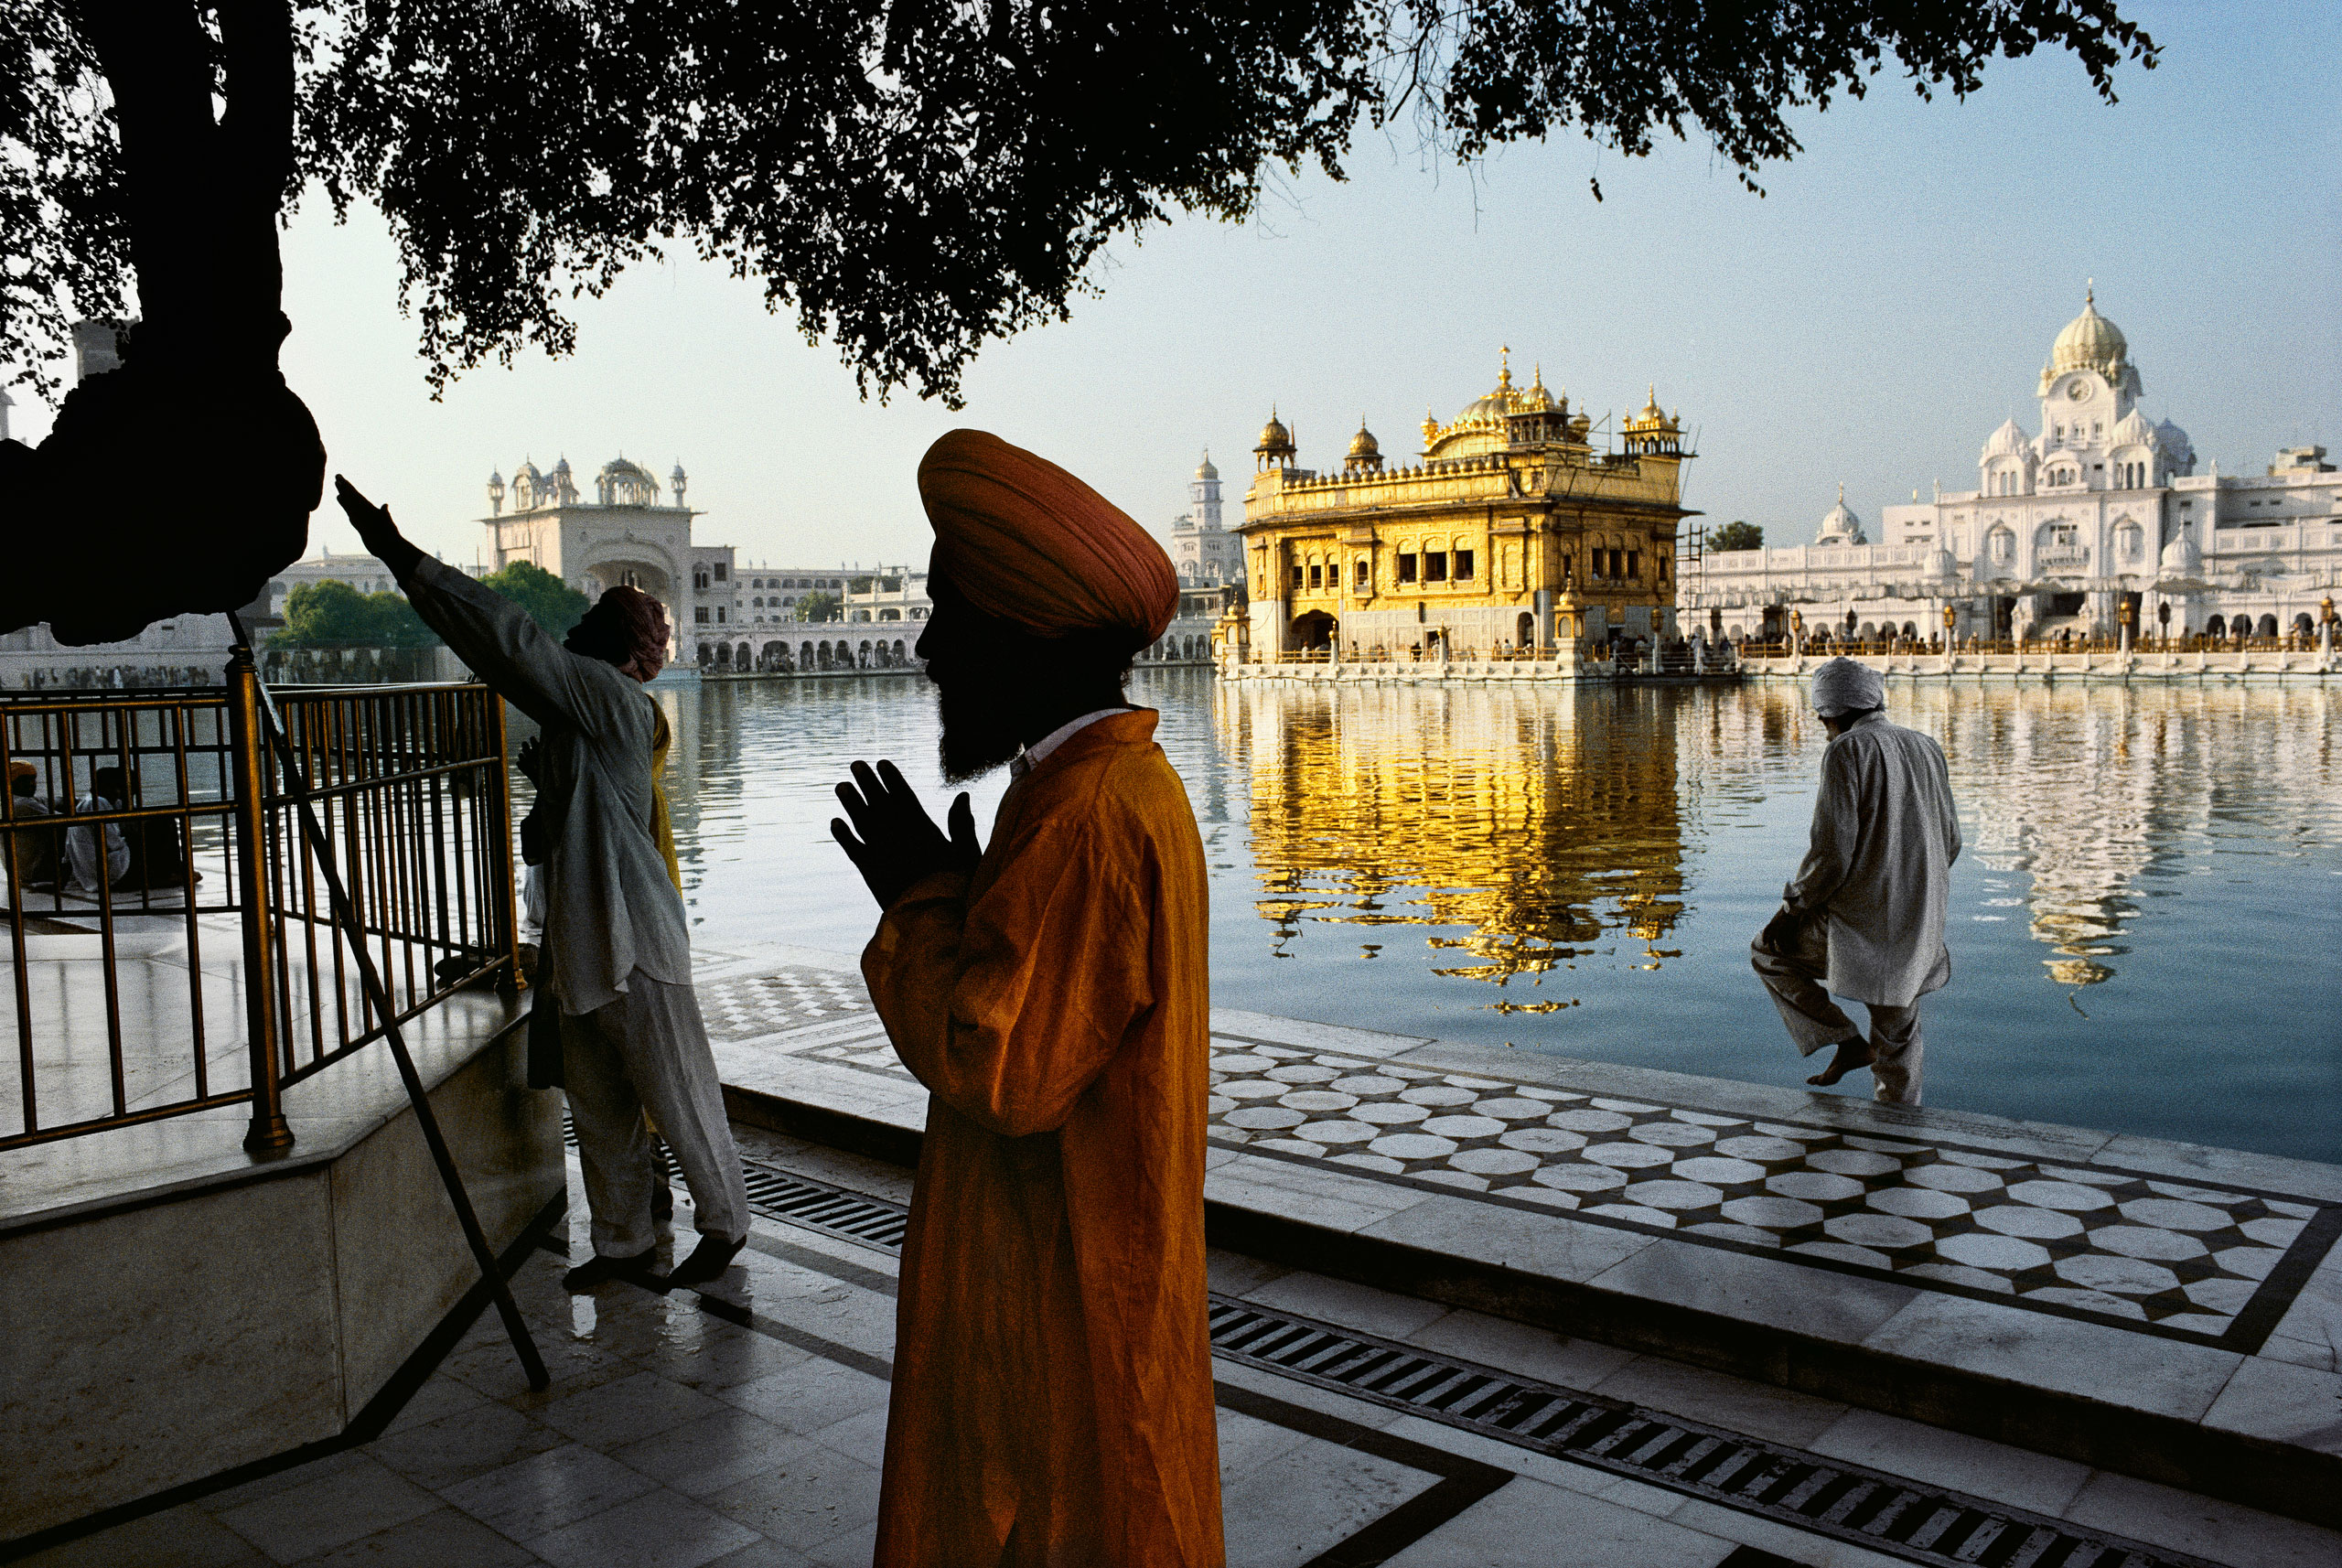 Sikh devotee prays at the Golden Temple Amritsar, Punjab, 1996